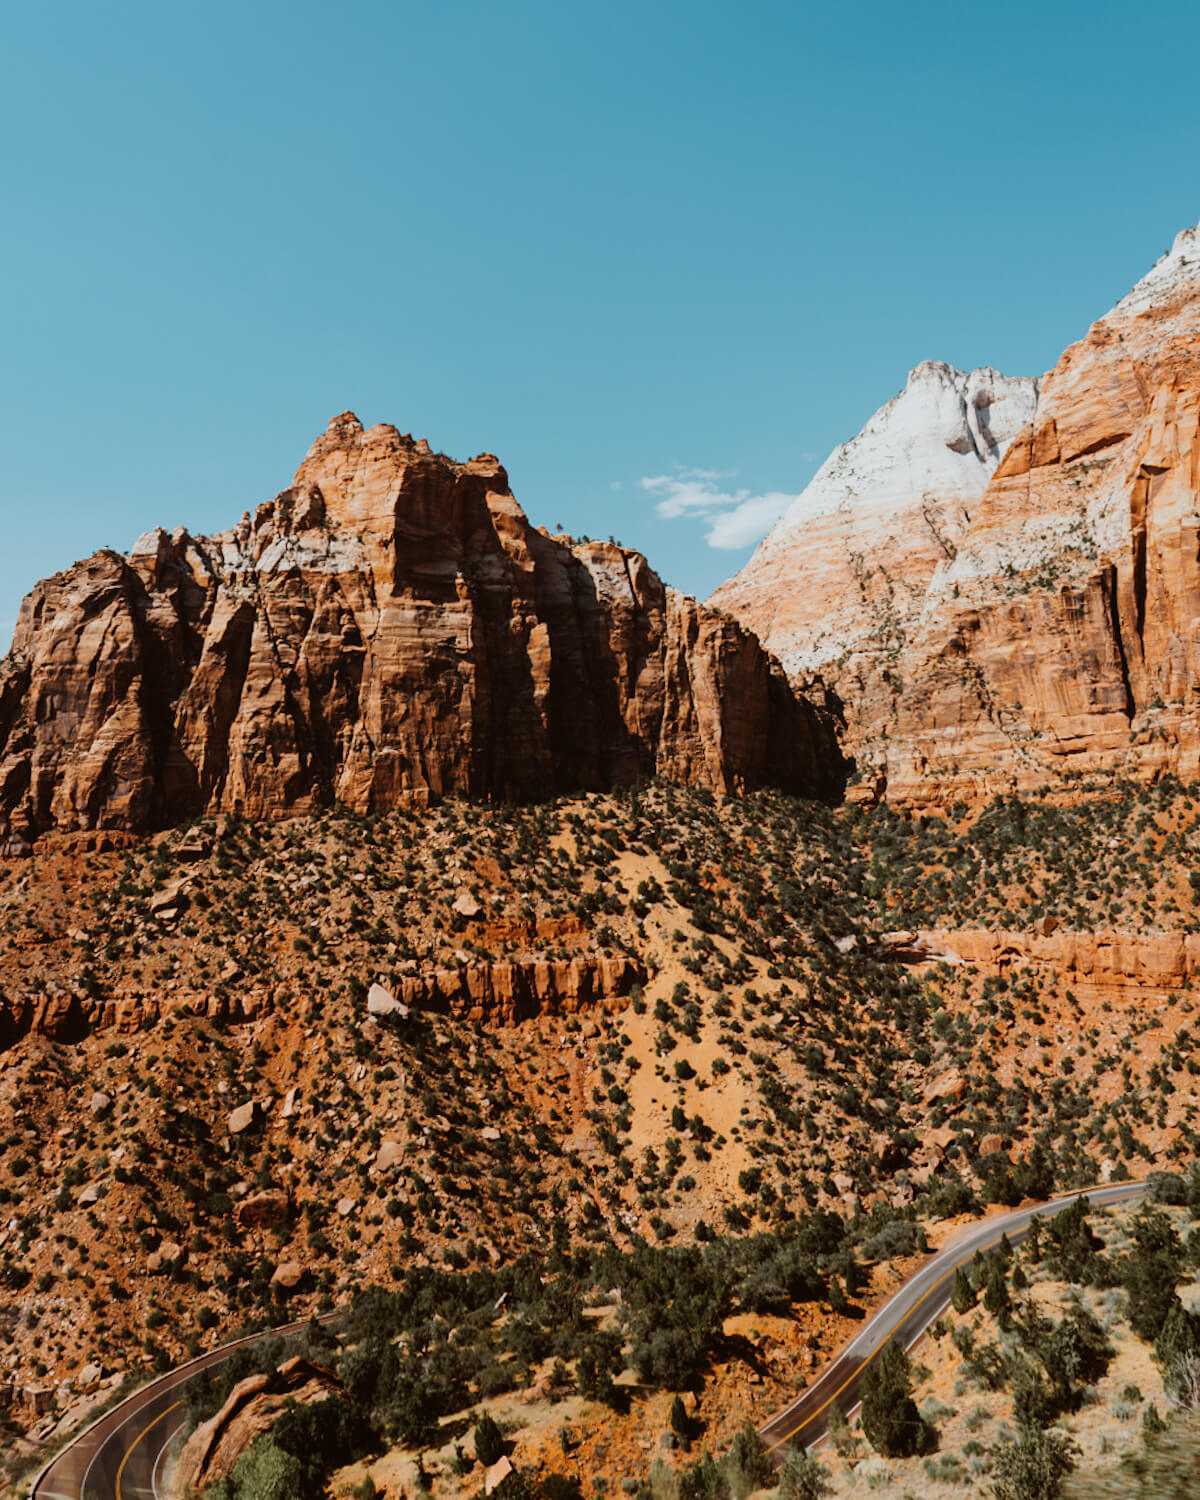 Zion National Park's scenic overlooks